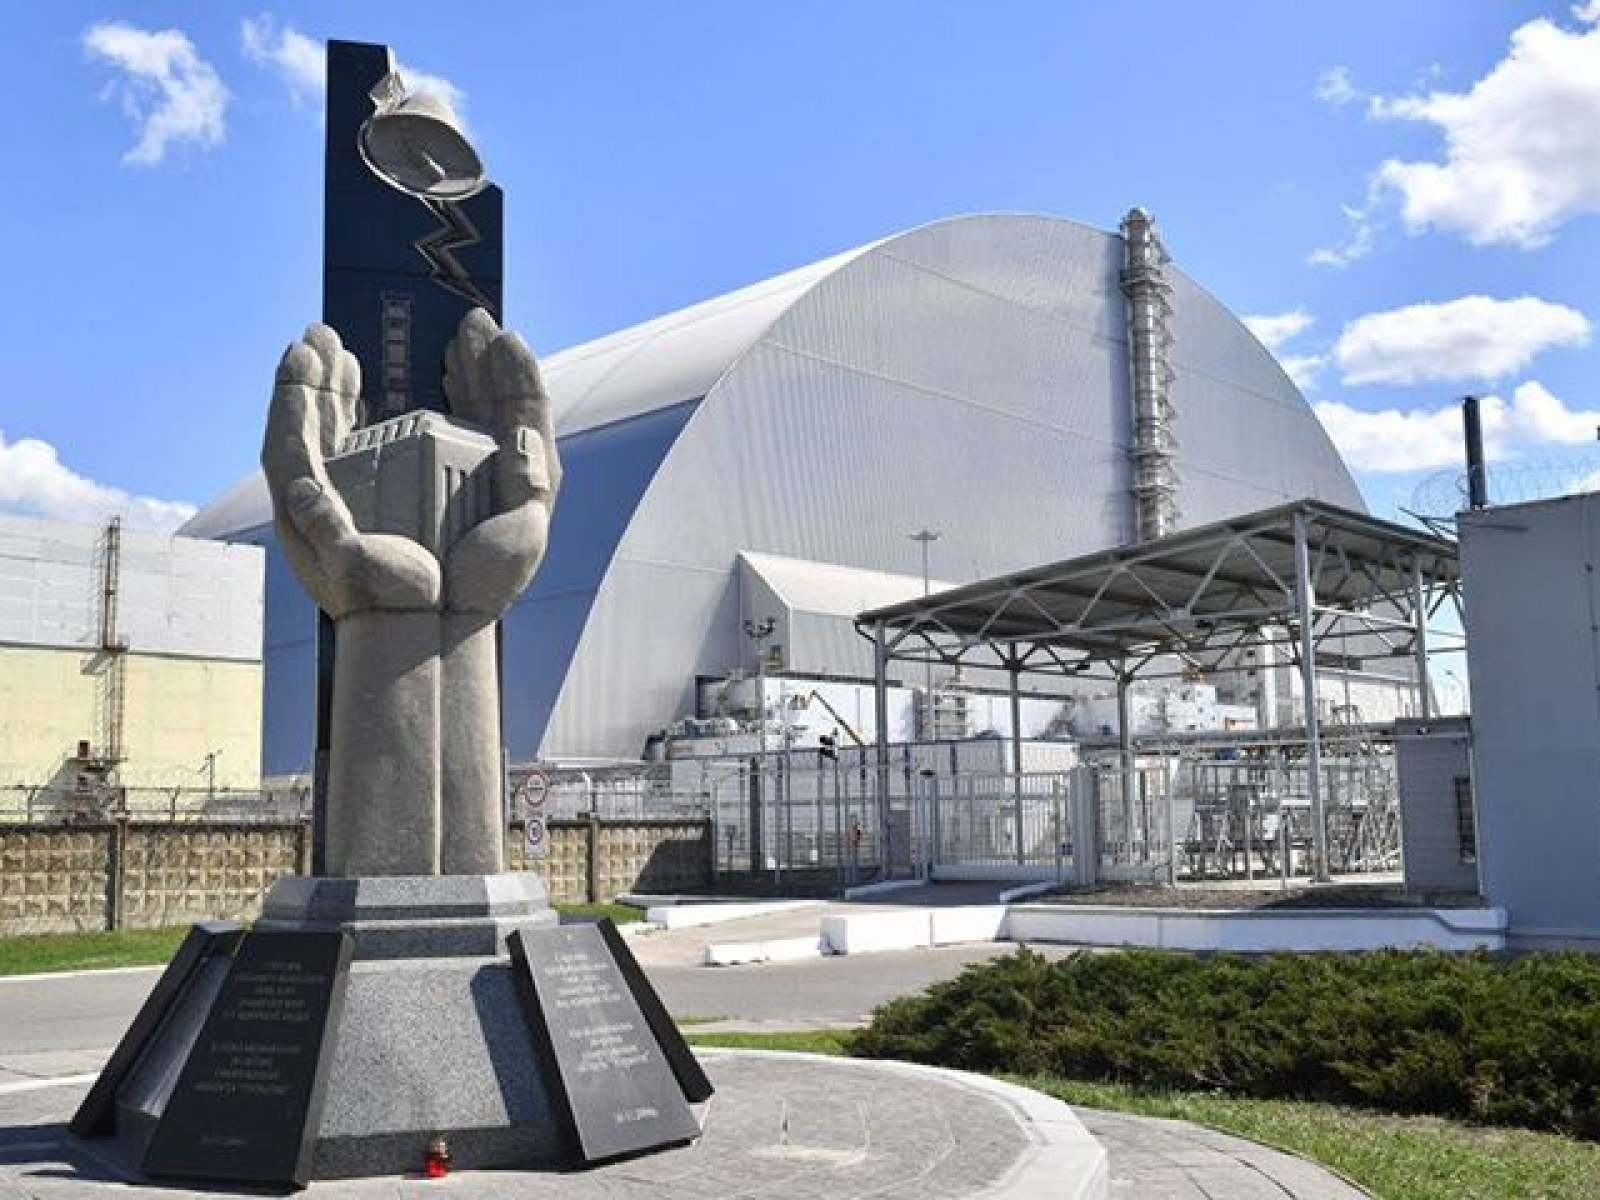 Chernobyl Disaster's First Responders Share True Stories of Death